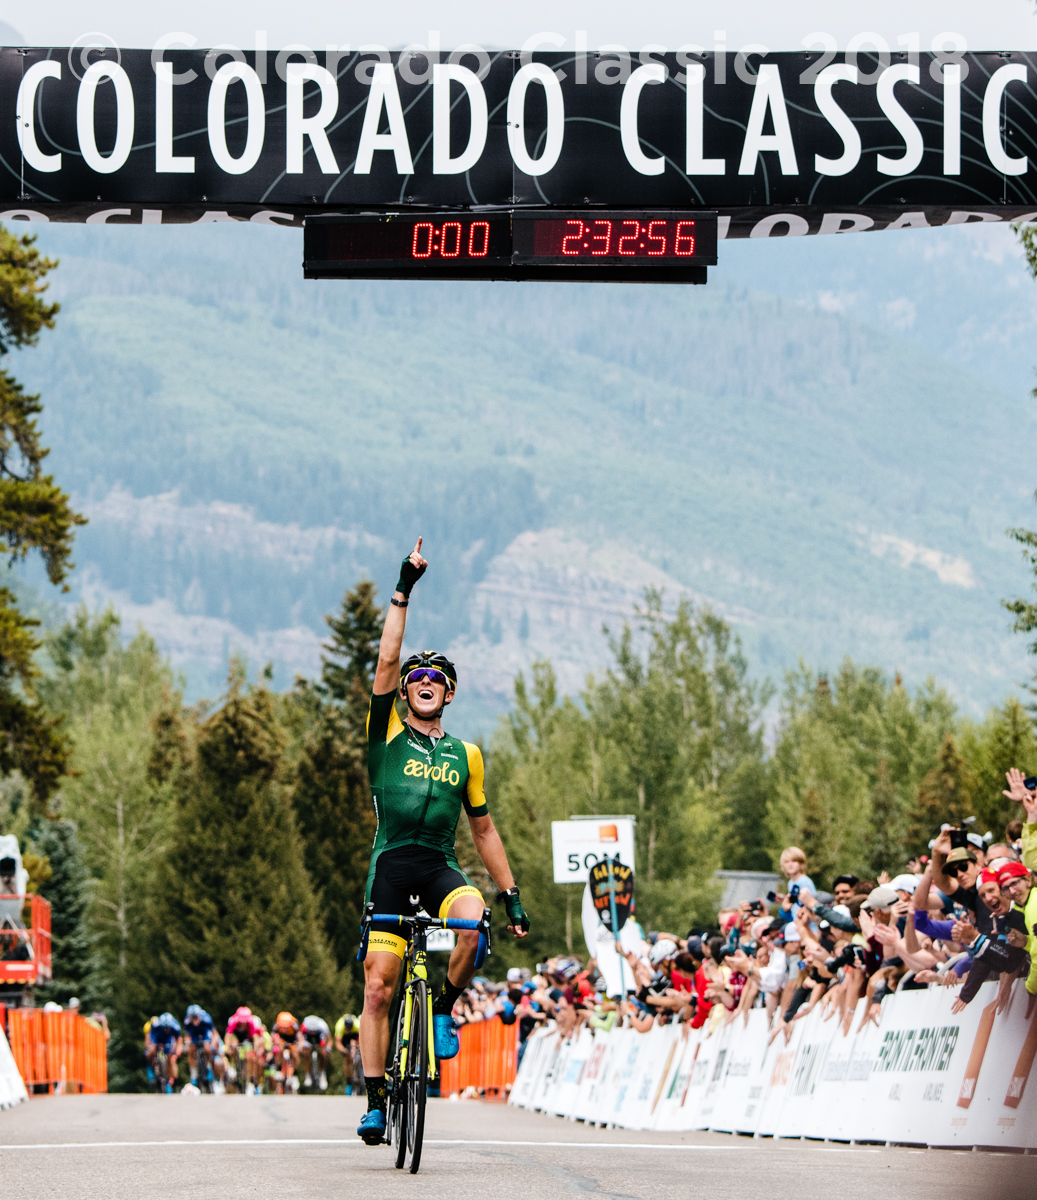 St1_M_CoClassic_2018-watermarked.jpg